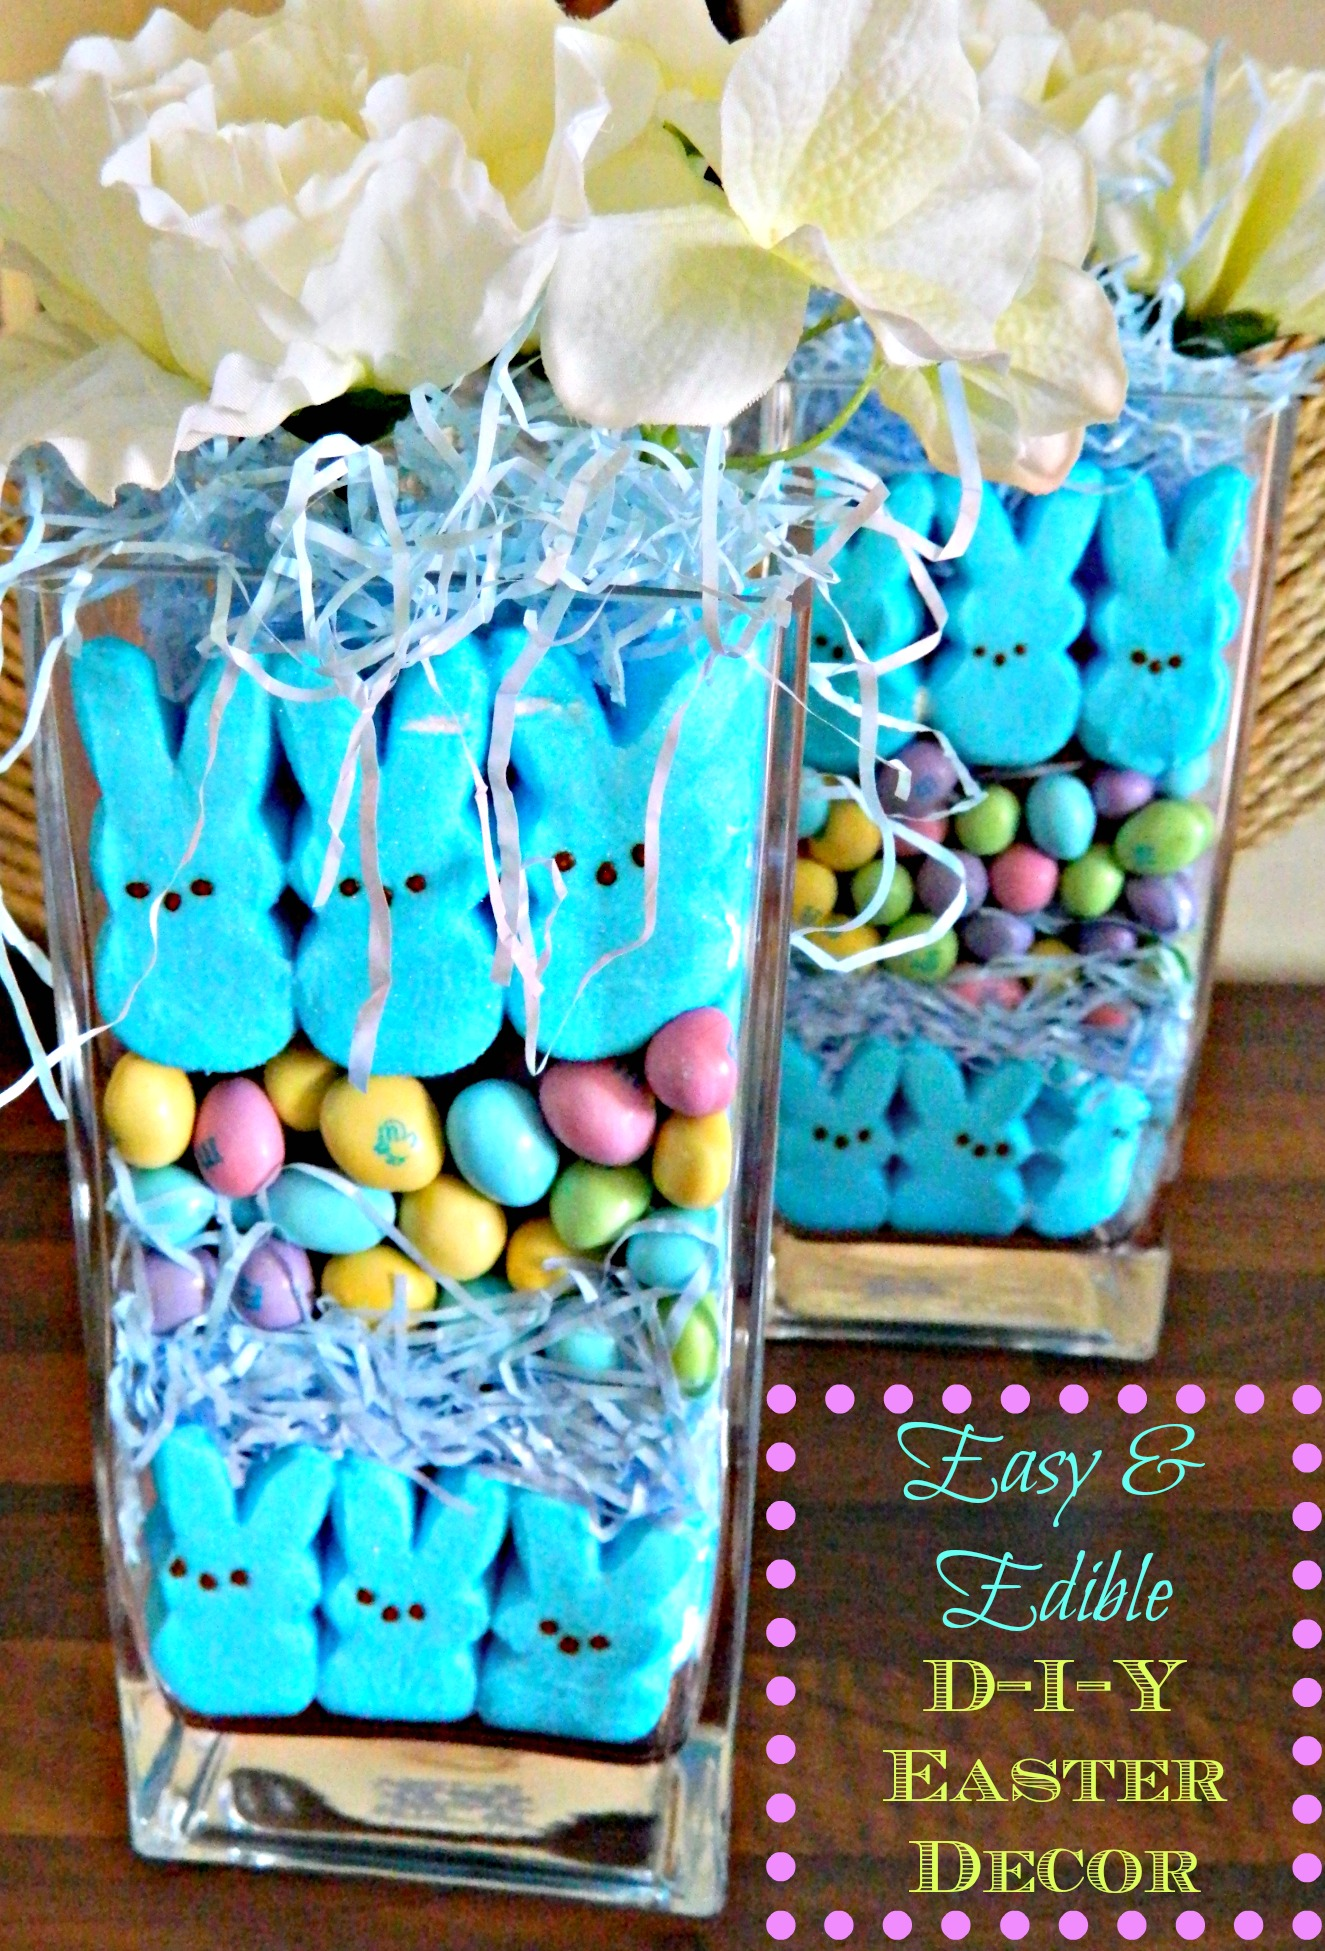 Easy d i y easter decorations finding silver linings for Diy easter decorations for the home